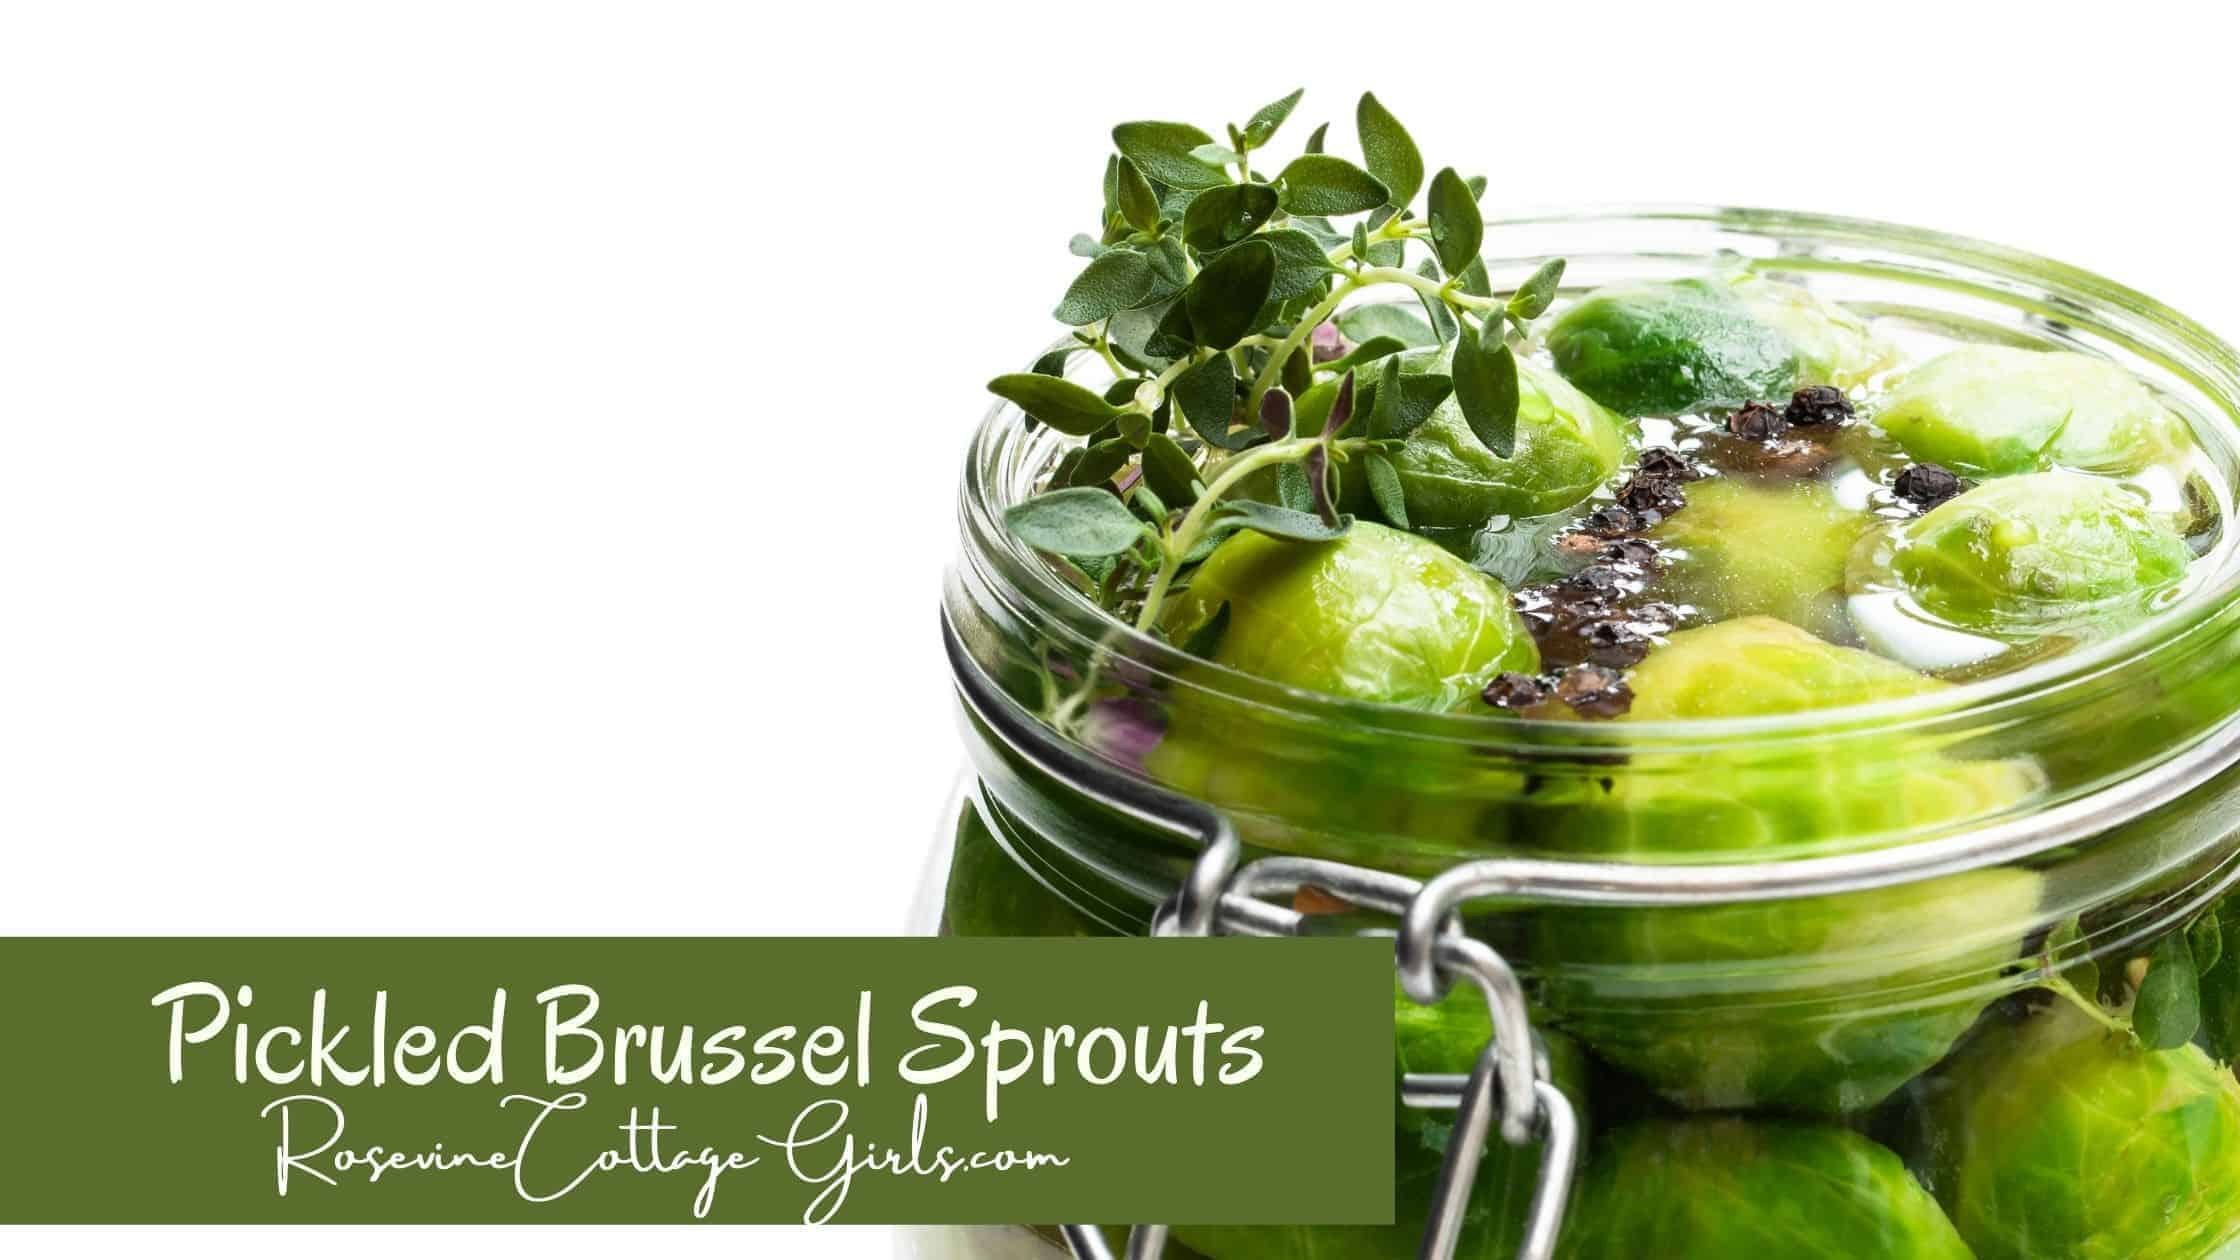 Pickled brussel sprouts | canned pickled brussel sprouts